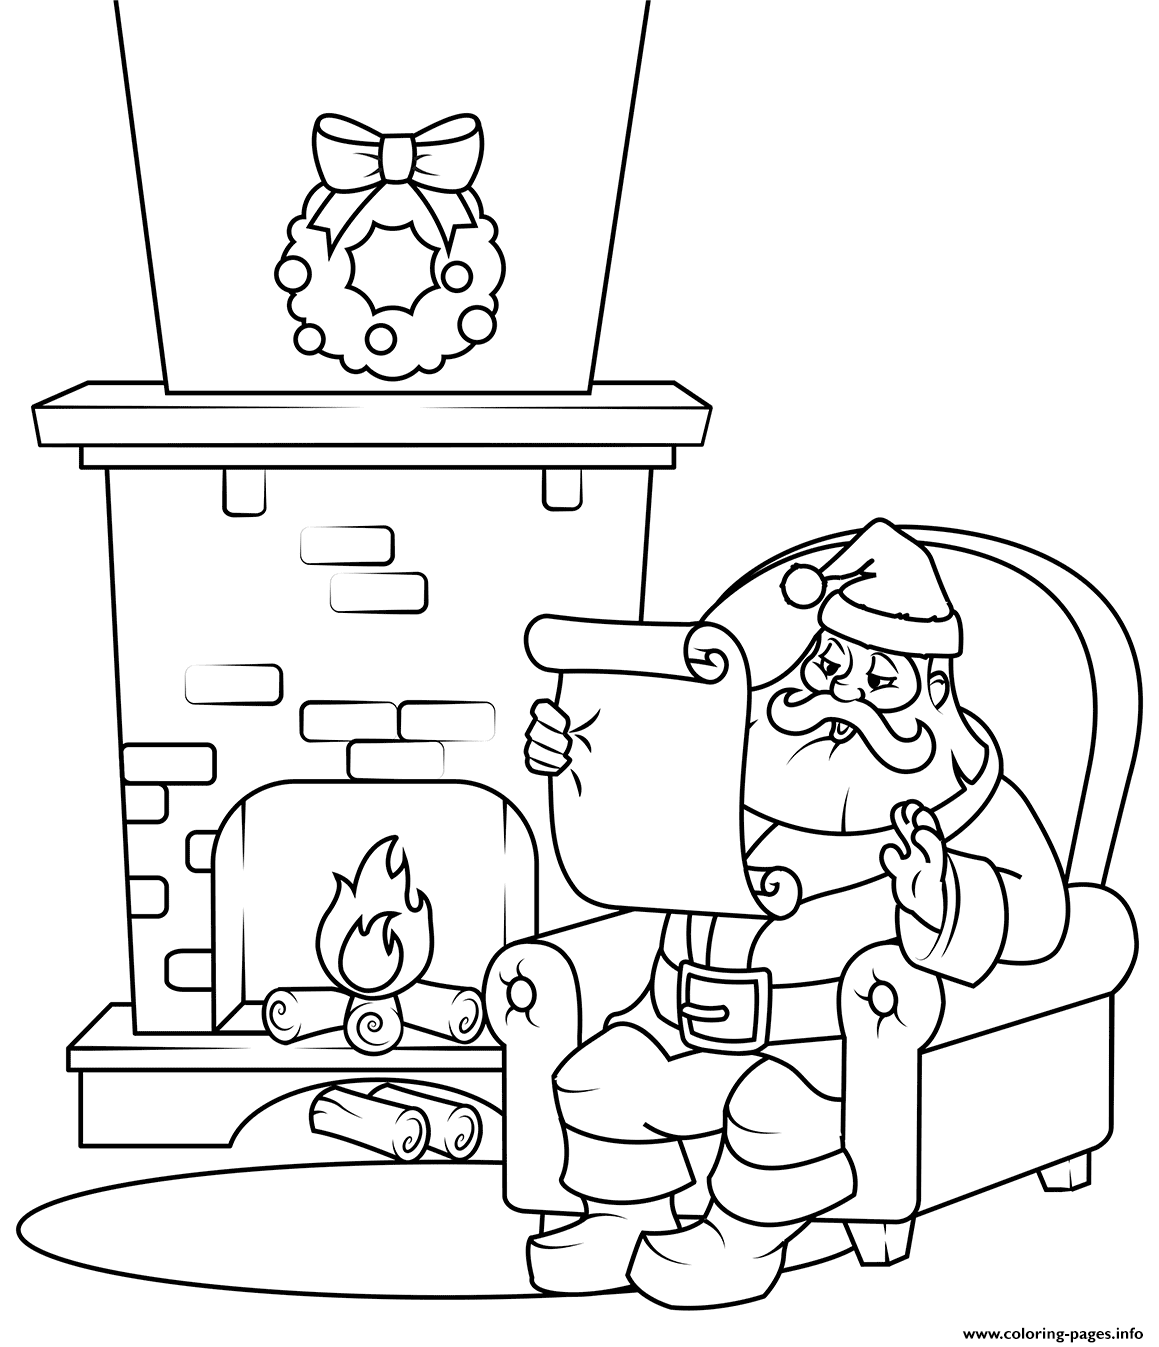 santa checking his list free santa list cliparts download free clip art free santa list his checking